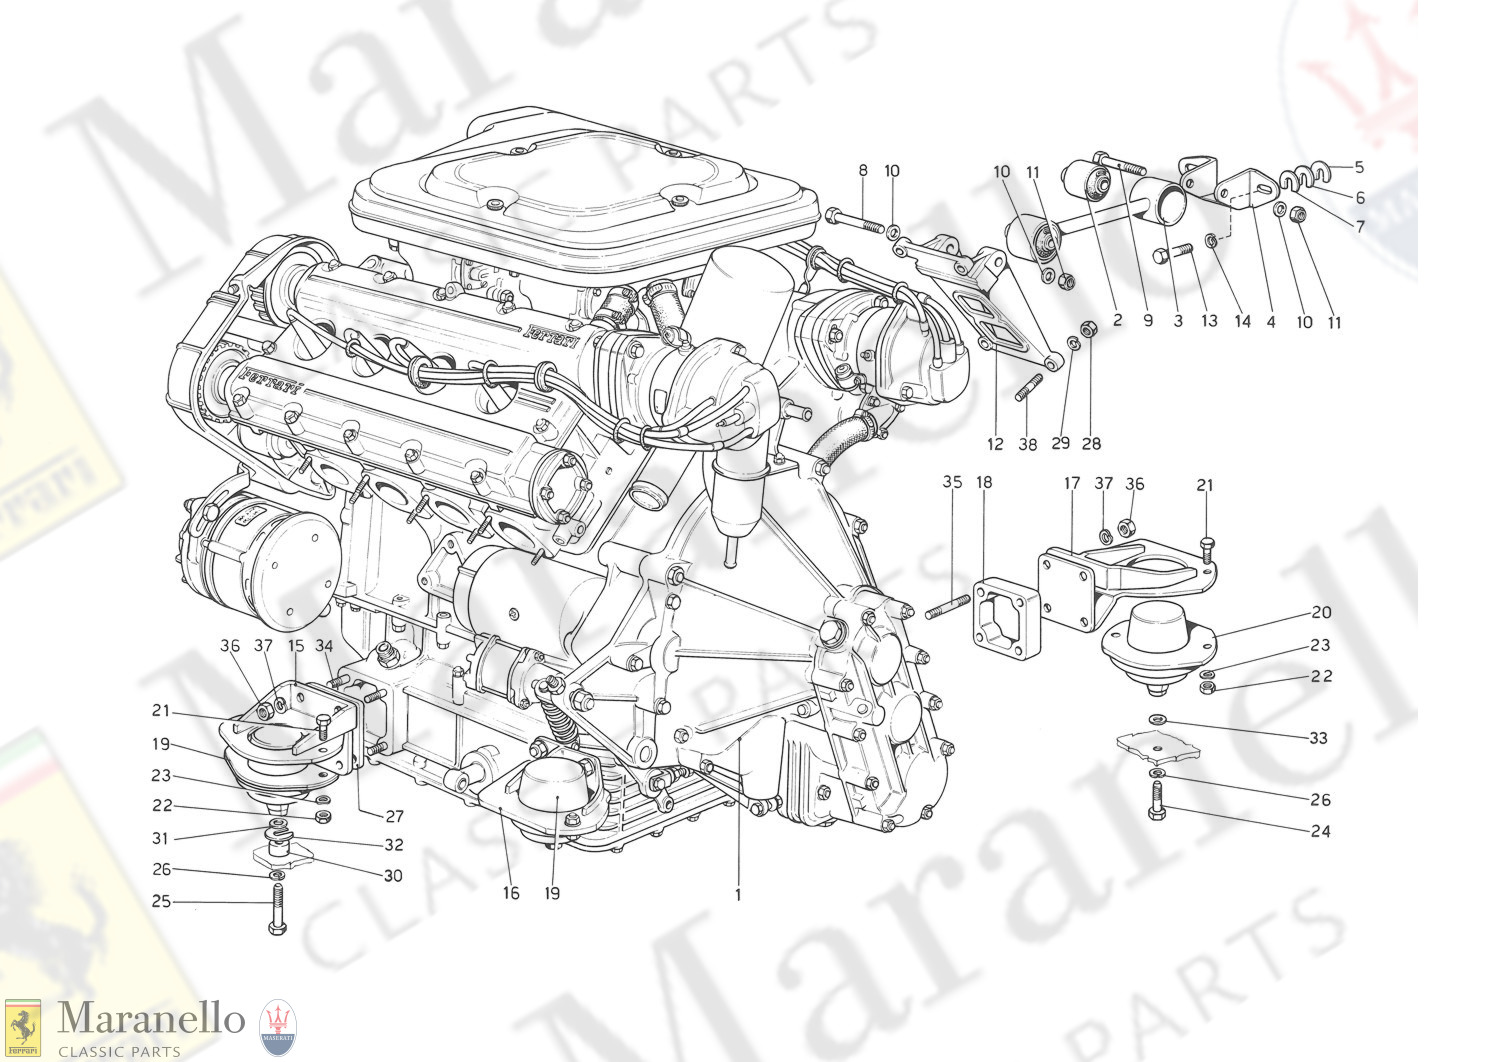 001 - Engine - Gearbox And Supports